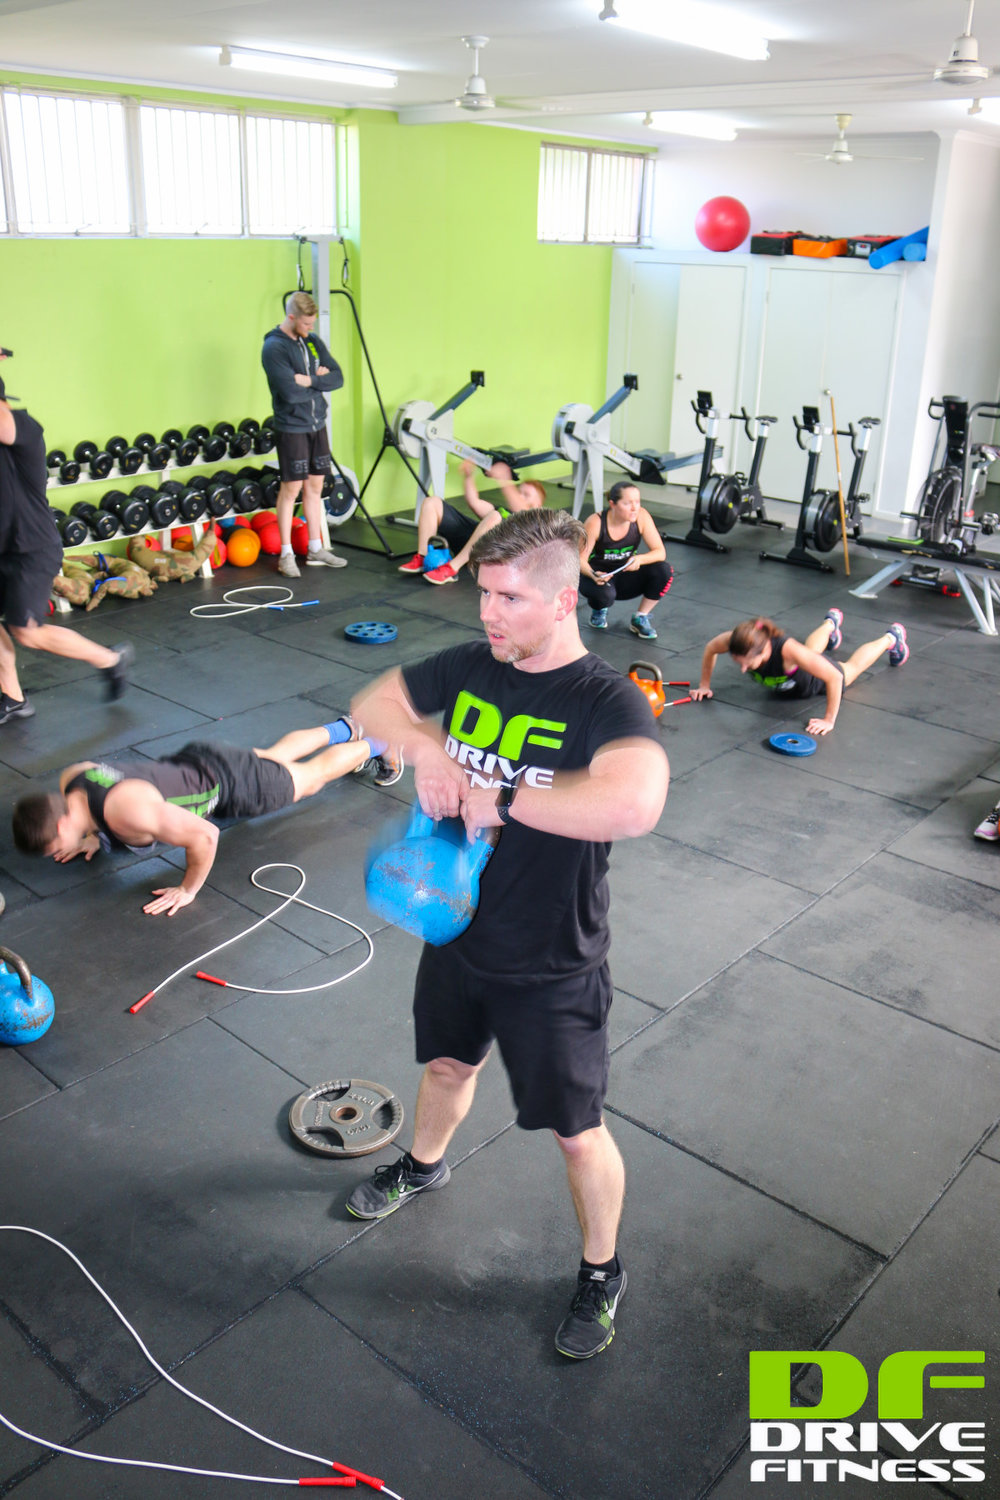 drive-fitness-personal-training-brisbane-4wws-2018 (7 of 34).jpg